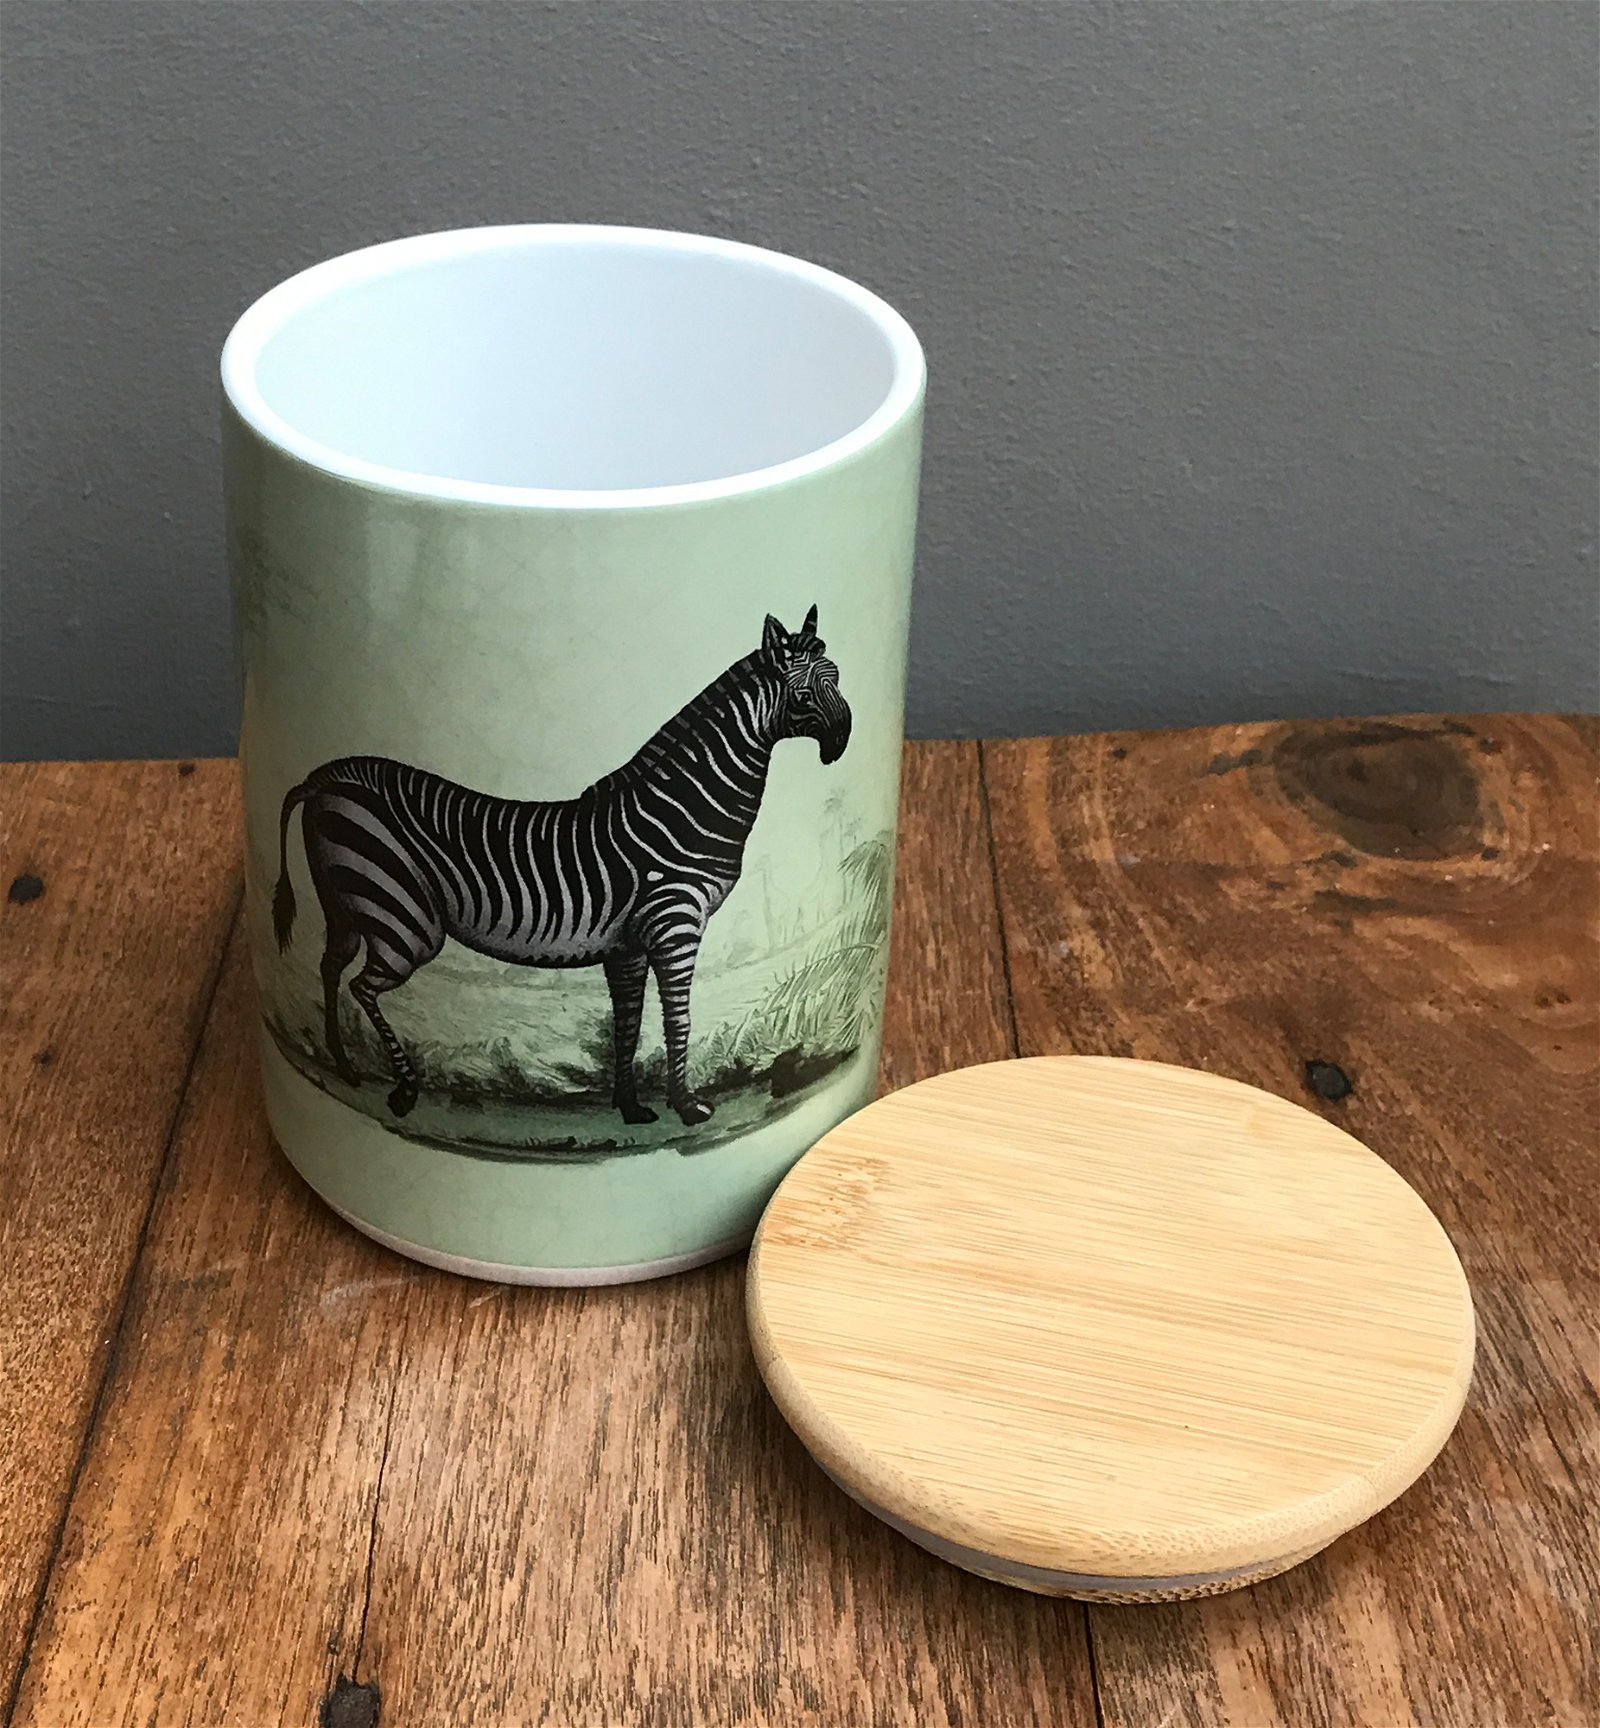 Ceramic Canister With Zebra